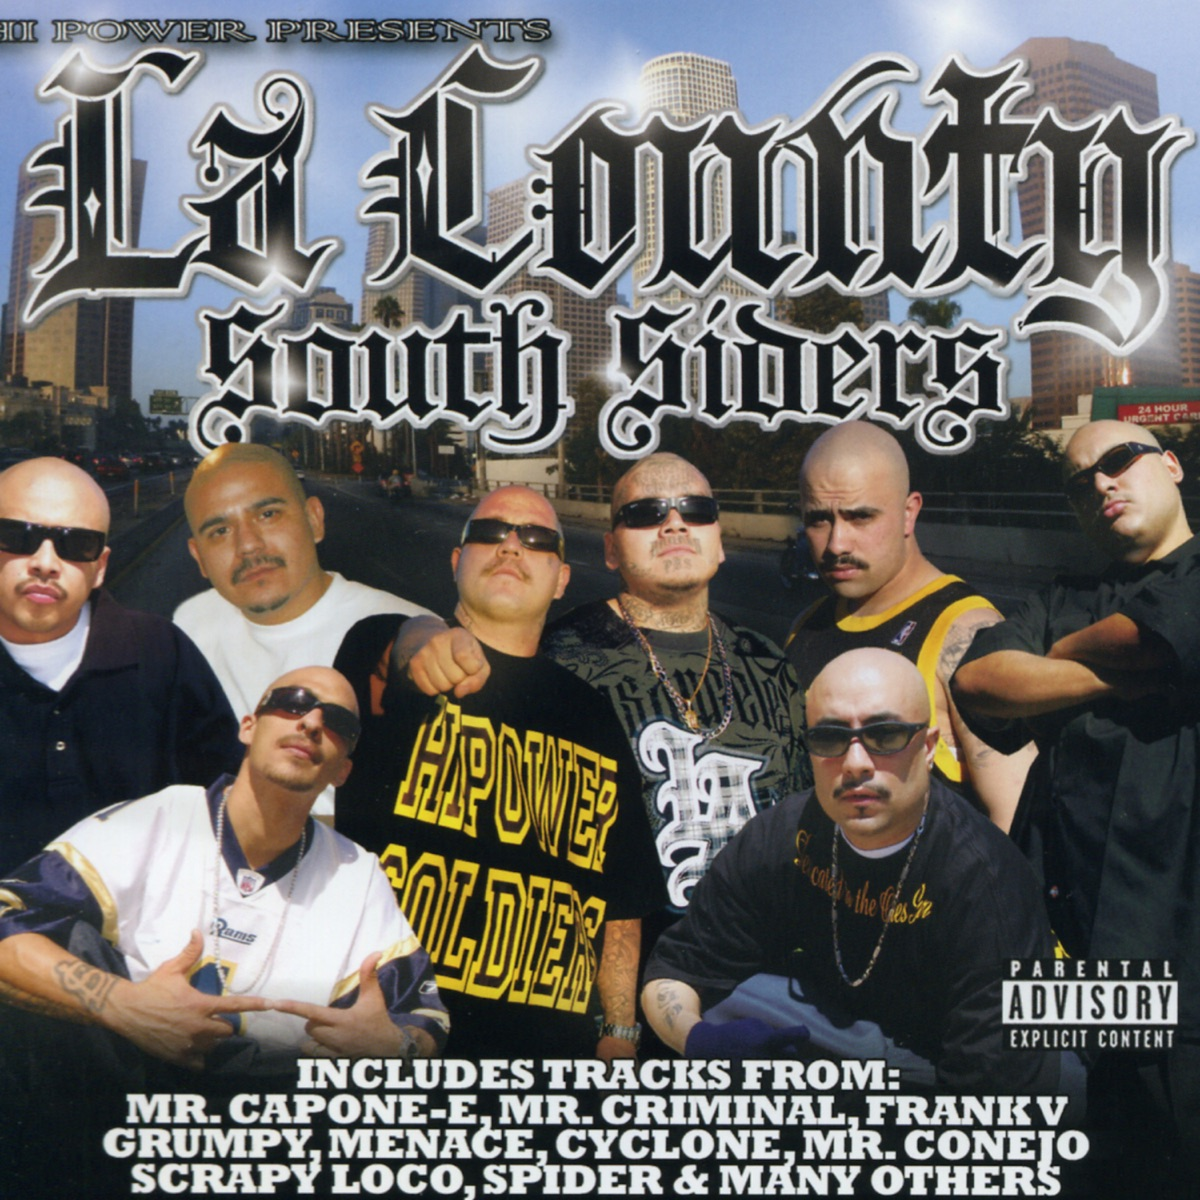 LA County South Siders Various Artists CD cover